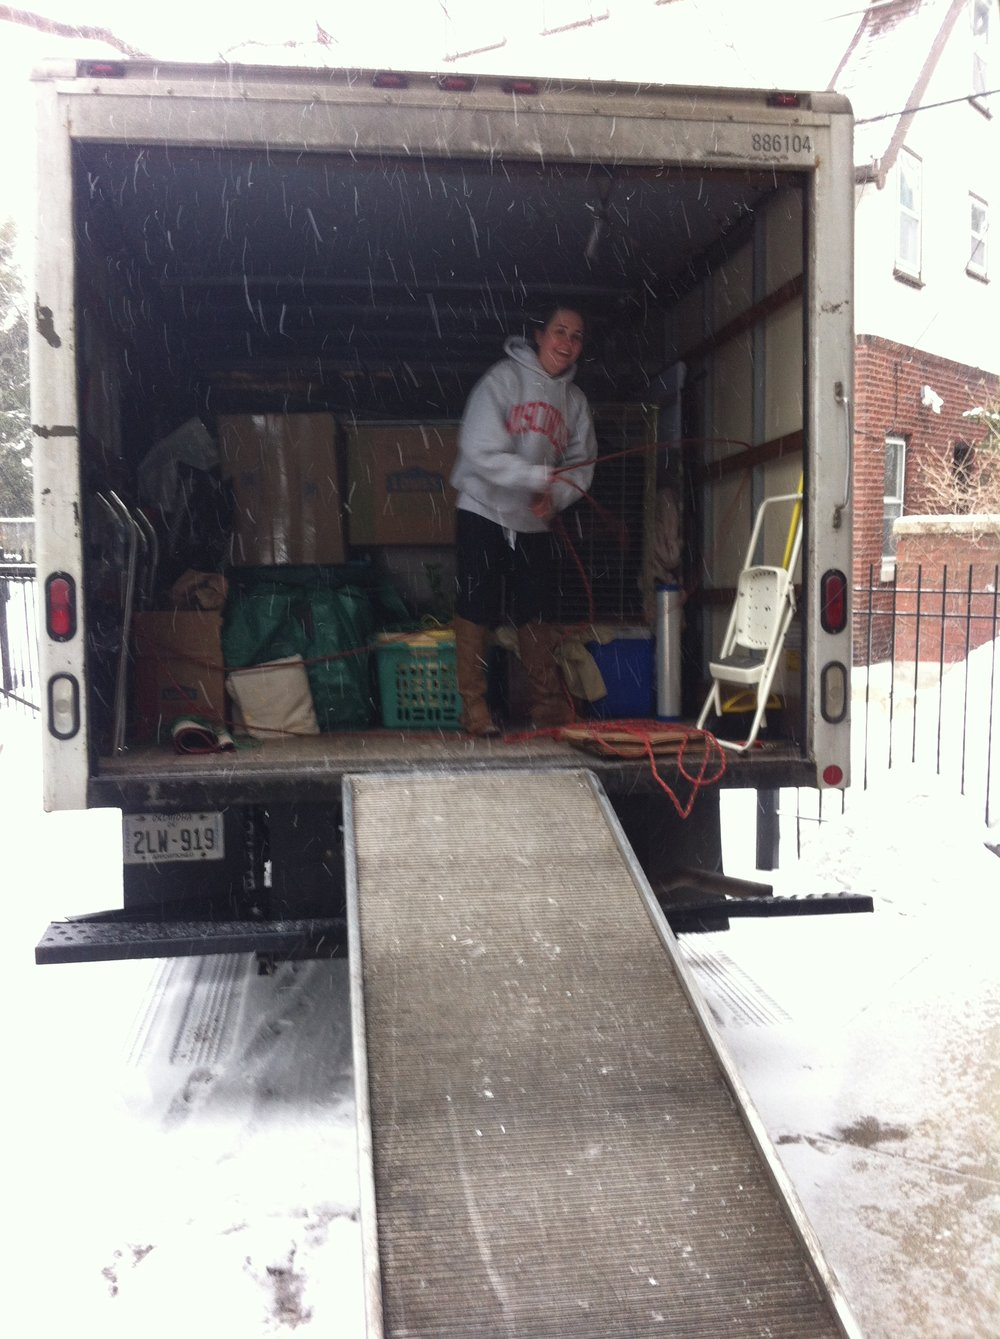 Unloading our truck during a blizzard